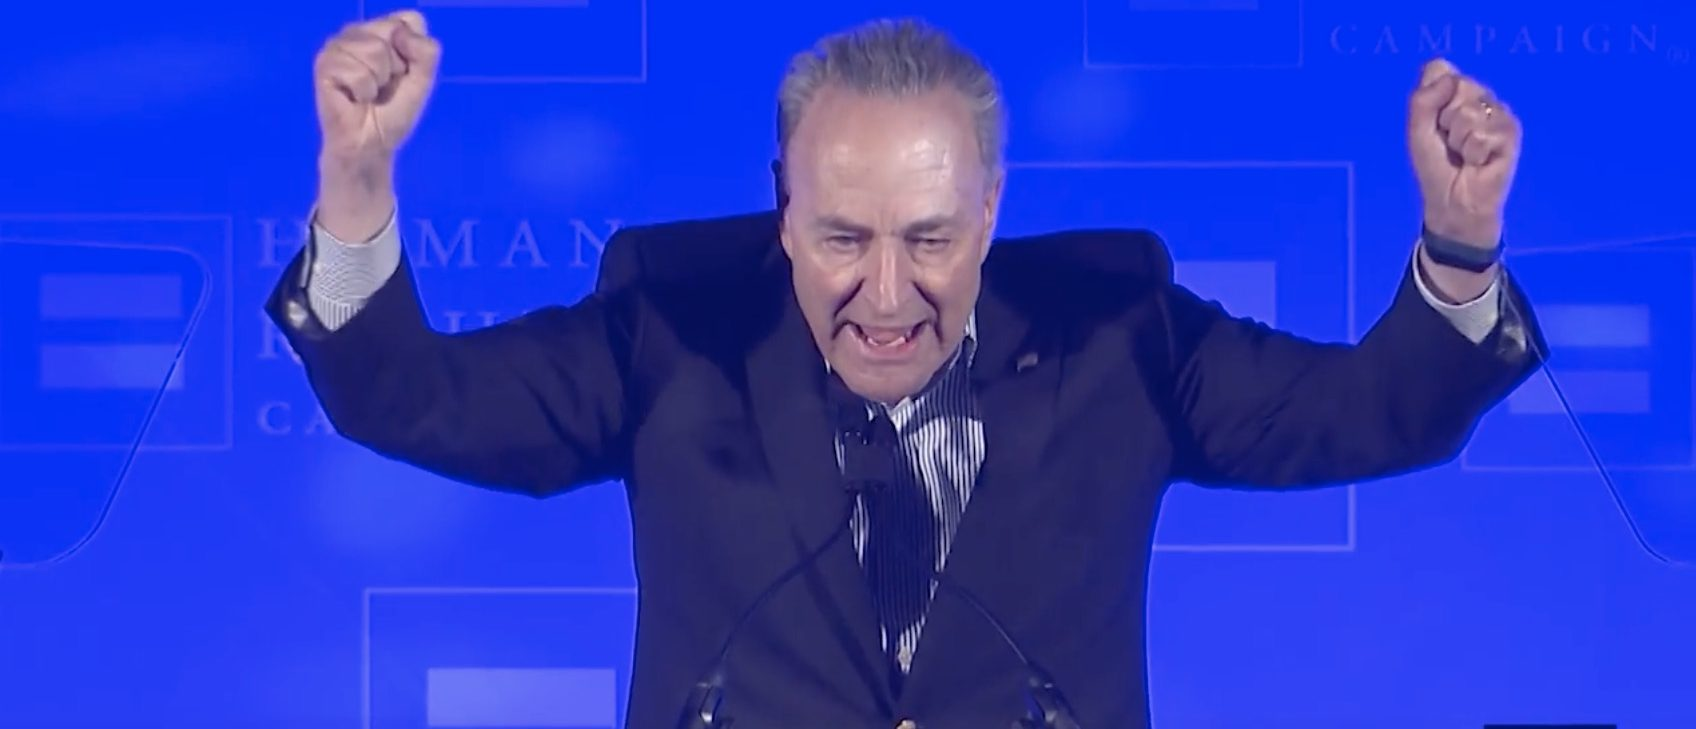 Senate Minority Leader Chuck Schumer speaks at a Human Rights Campaign event February 3, 2018. (Photo: Screenshot/Human Rights Watch/YouTube)